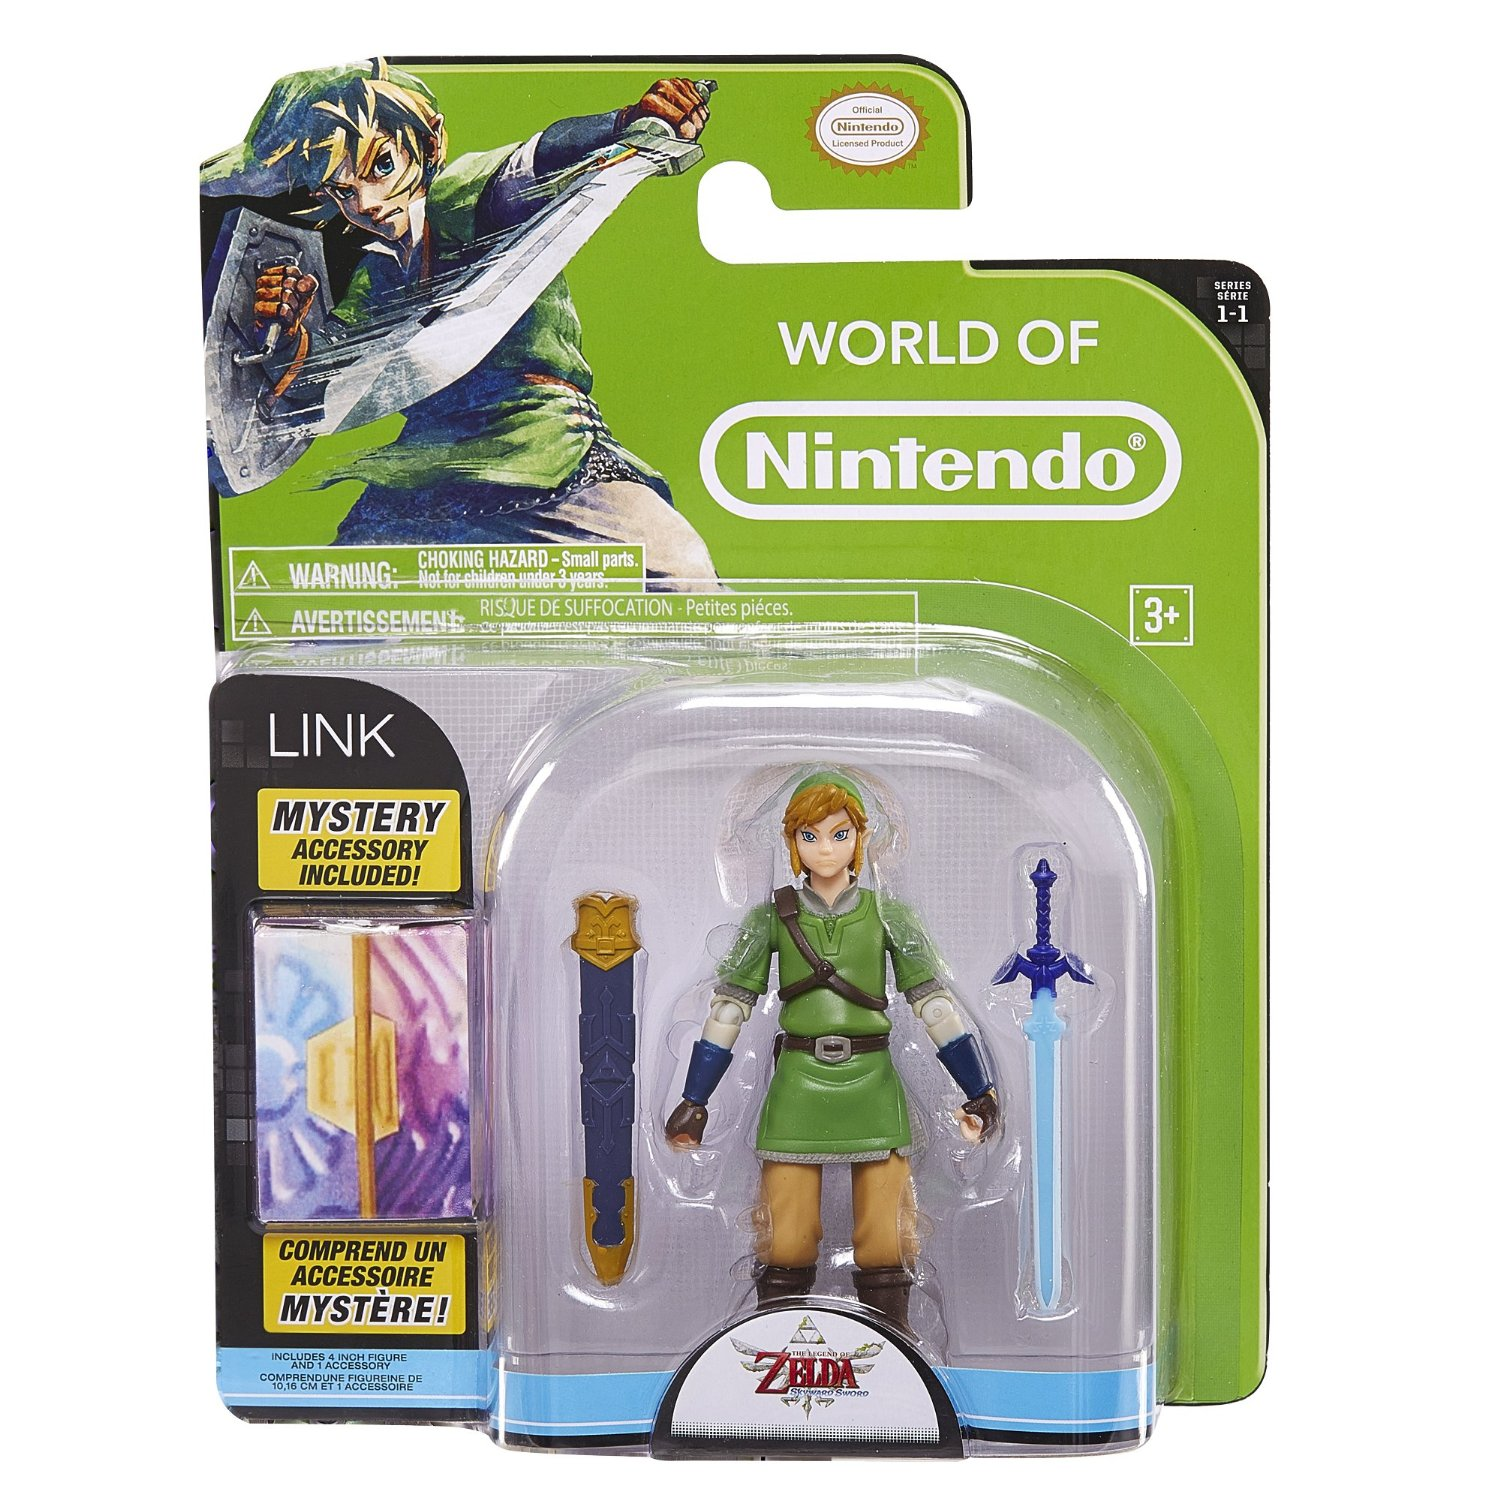 World of Nintendo Link Review